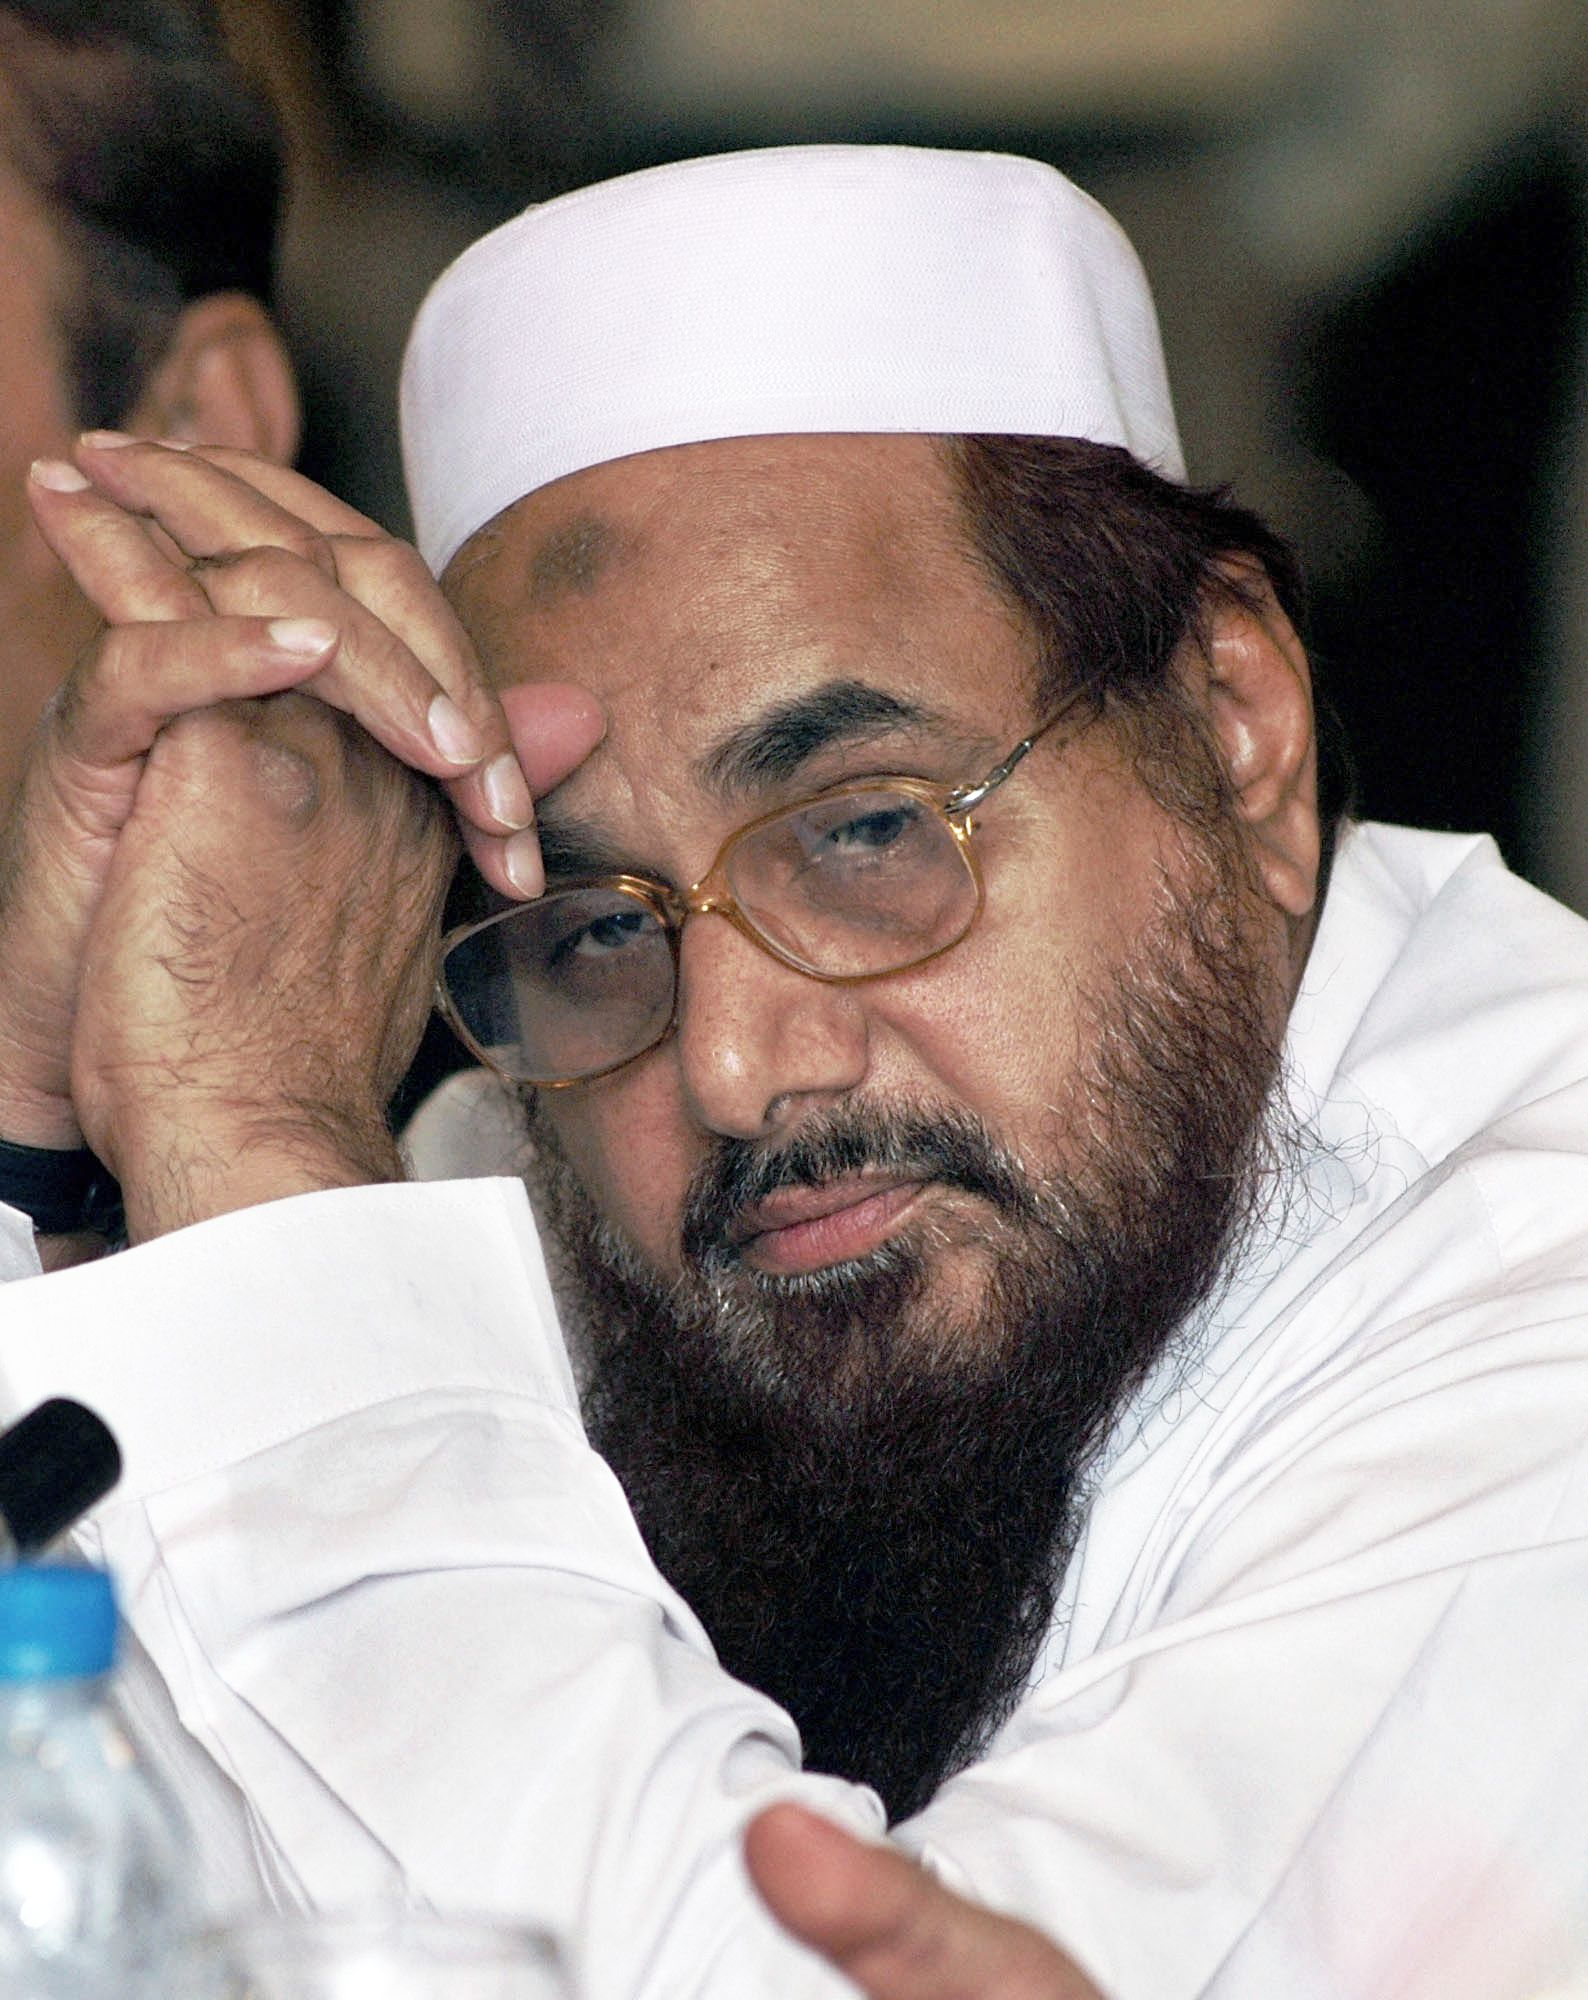 Hafeez Saeed is the co-founder of the Lashkar-e-Toiba, which was responsible for the Mumbai terror attacks in 2008.